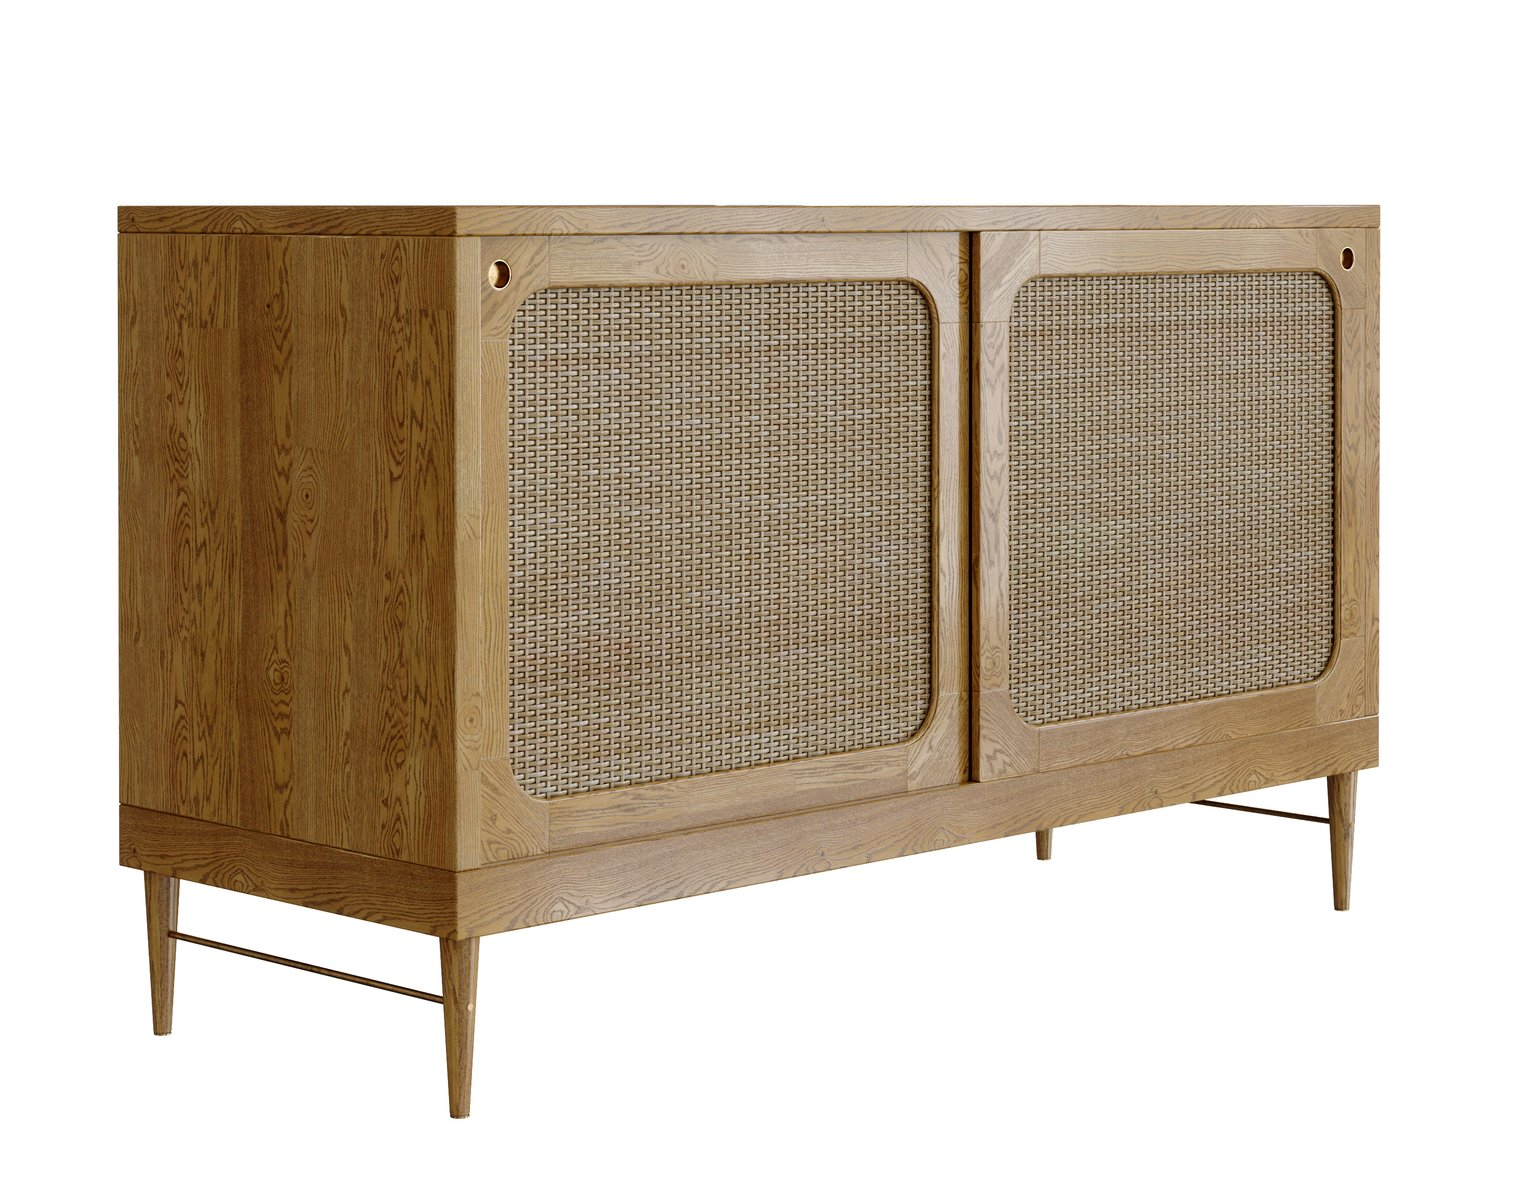 Sideboard in natural oak and rattan by lind almond for for Sideboard rattan